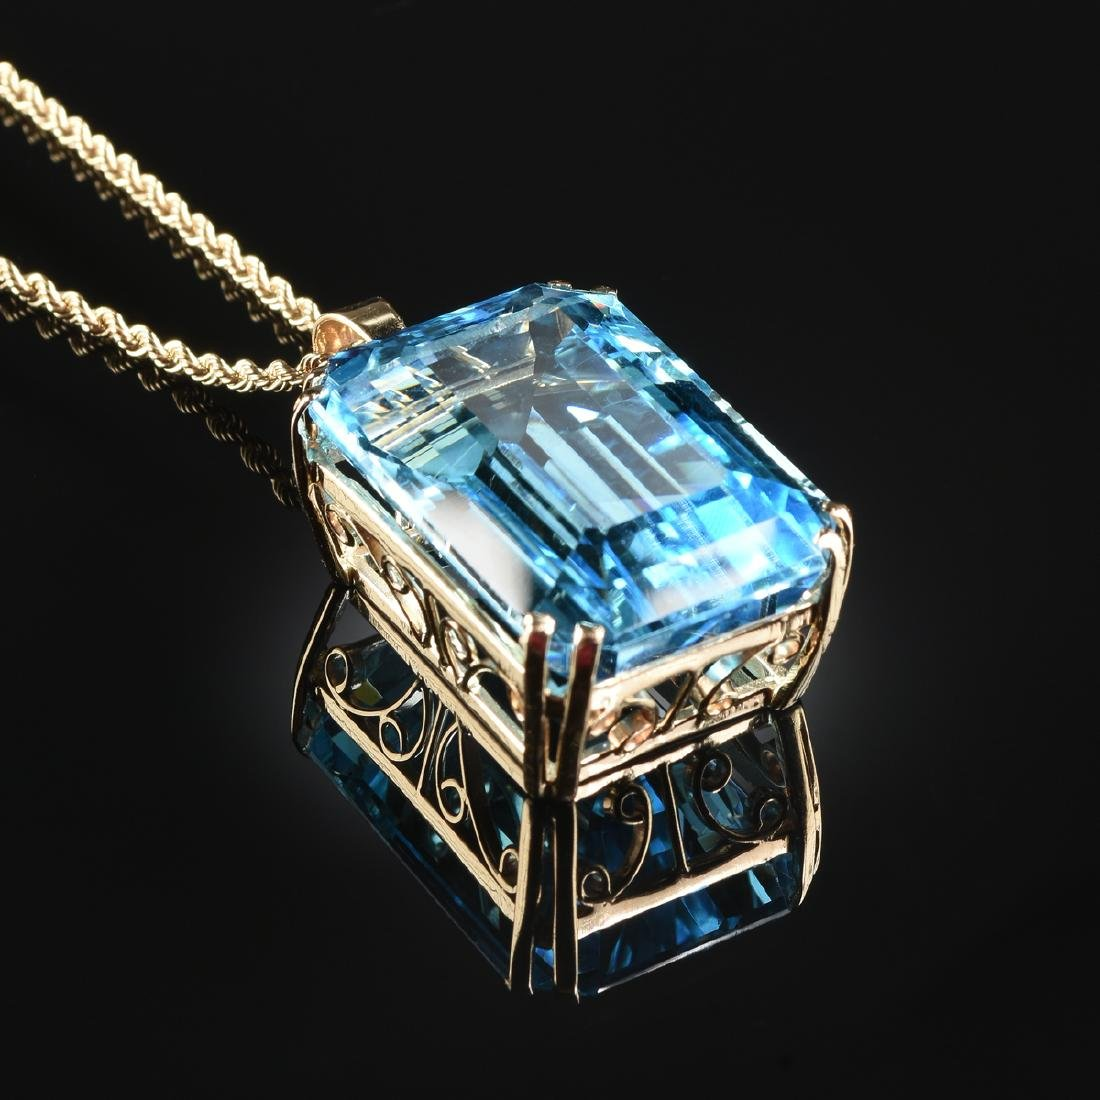 A 14K YELLOW GOLD AND BLUE TOPAZ LADY'S PENDANT,